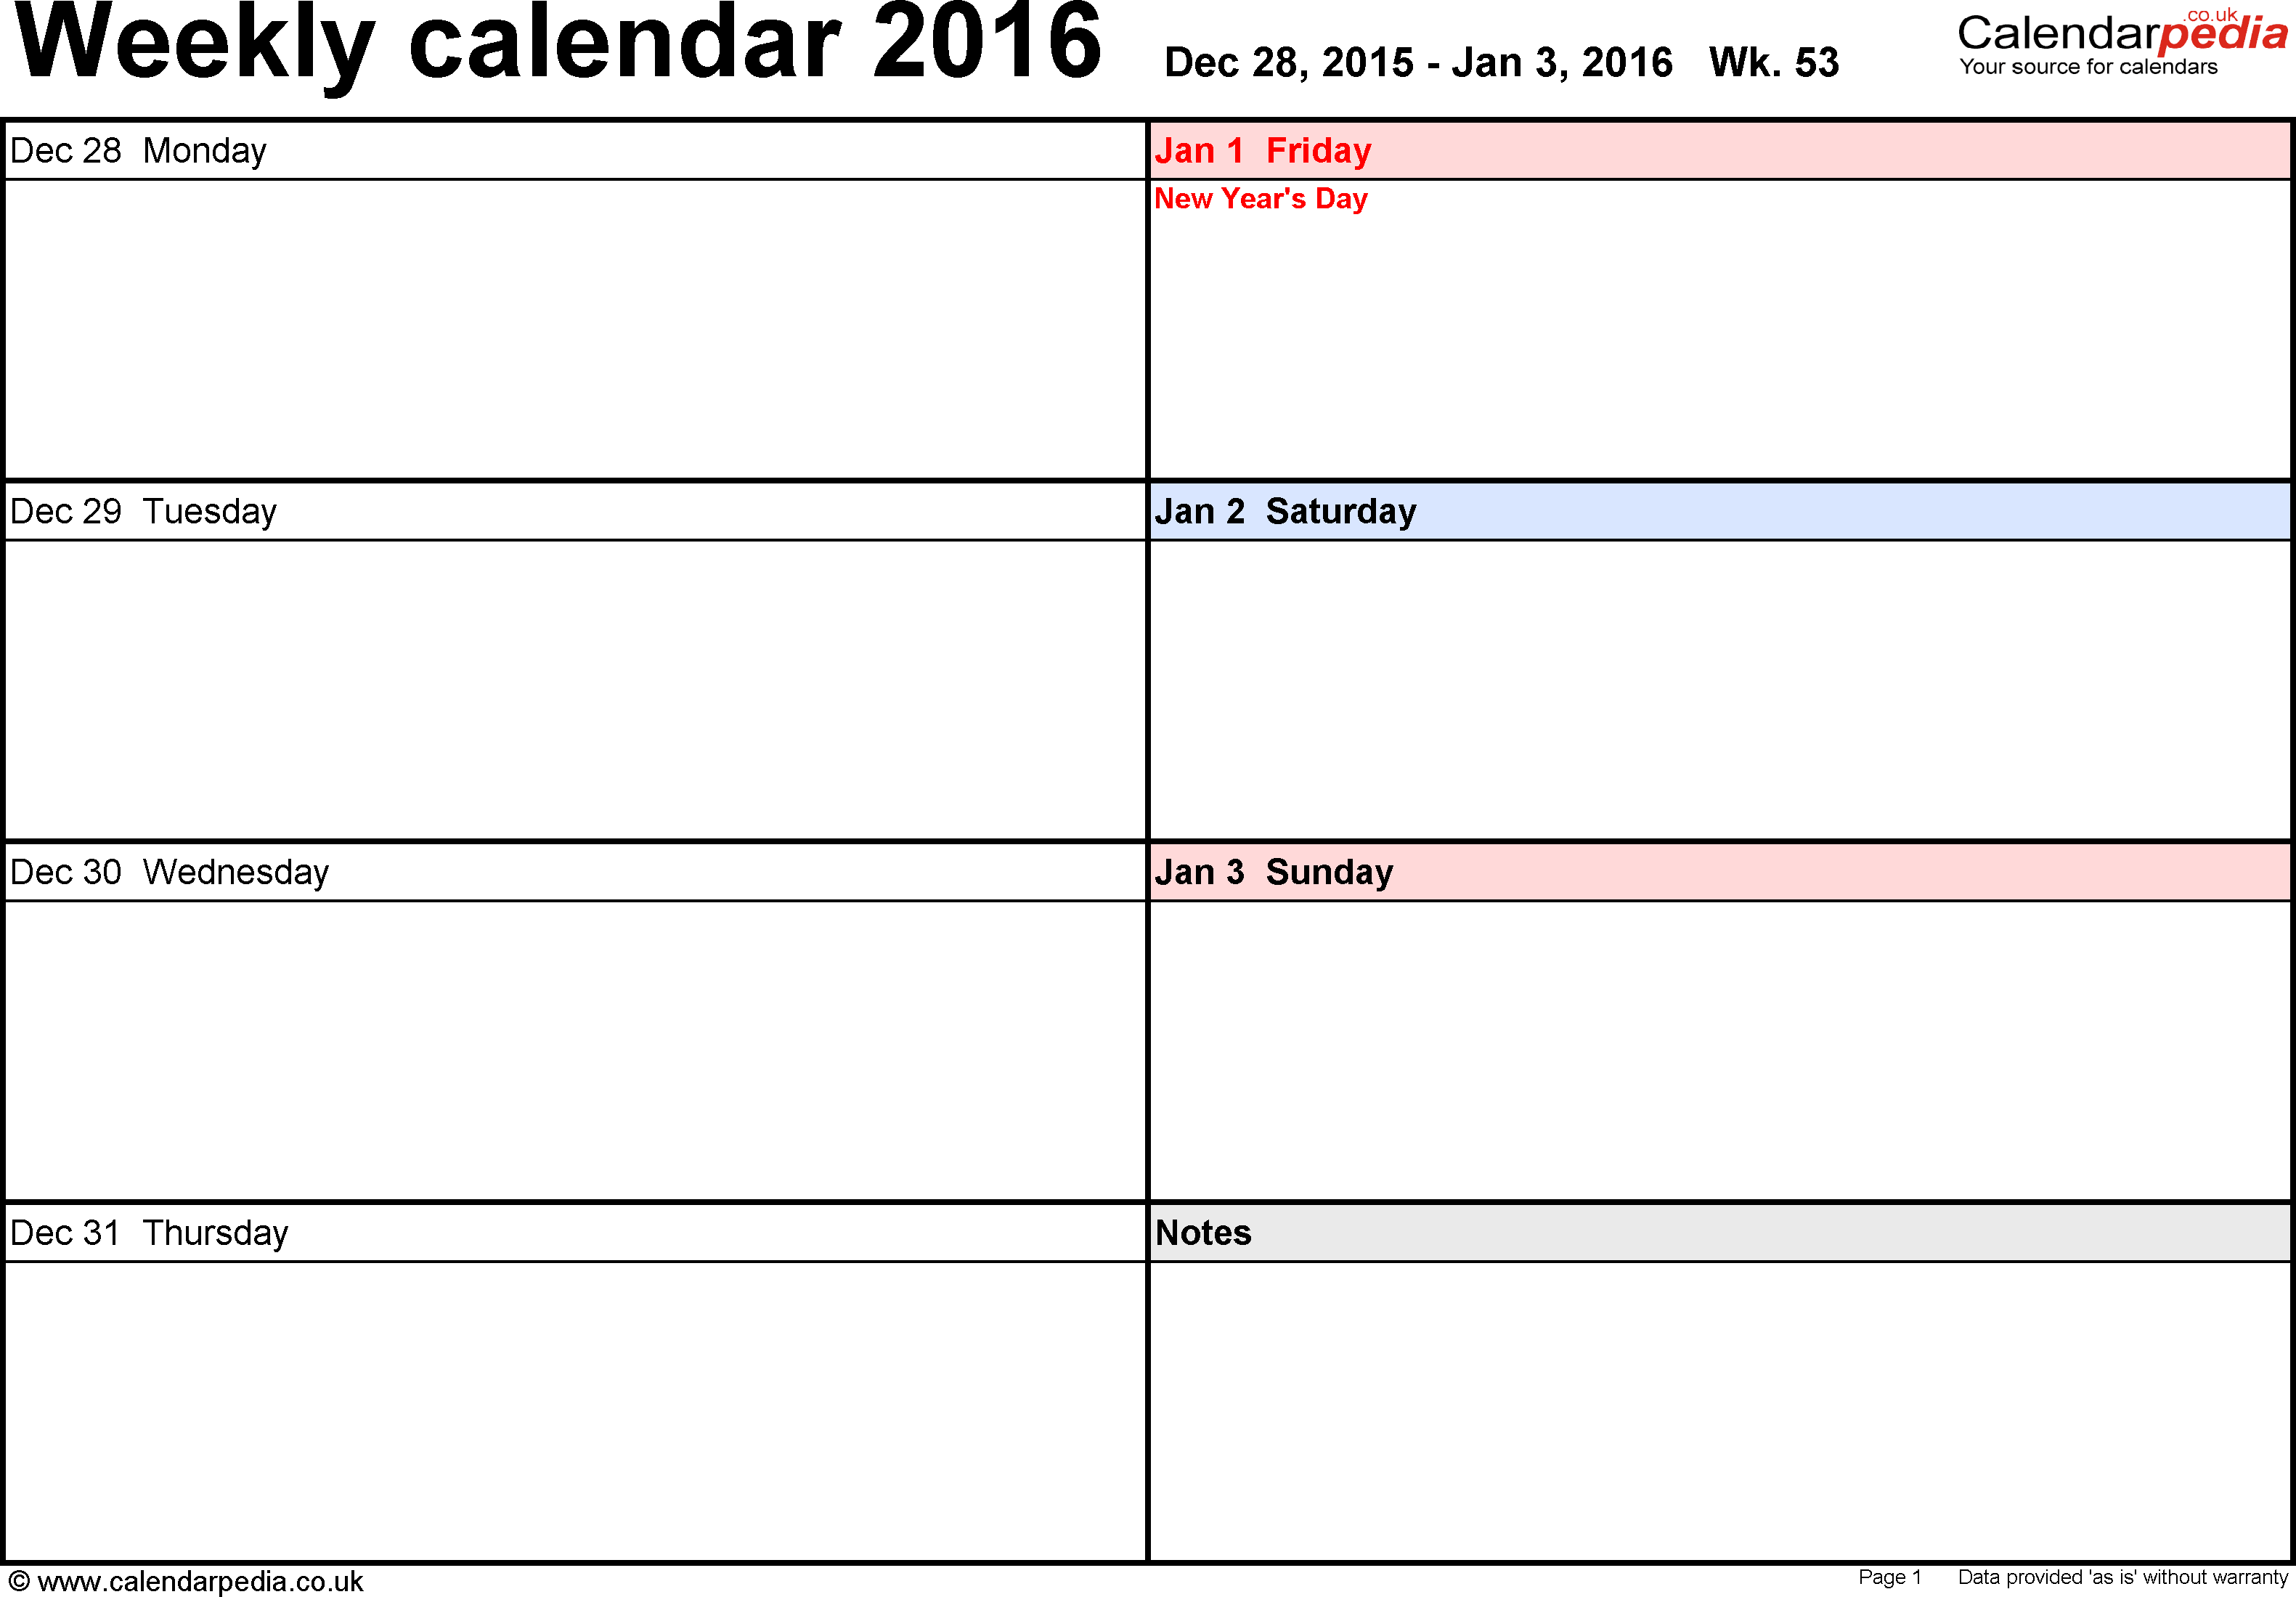 Weekly calendar 2016 UK - free printable templates for Word